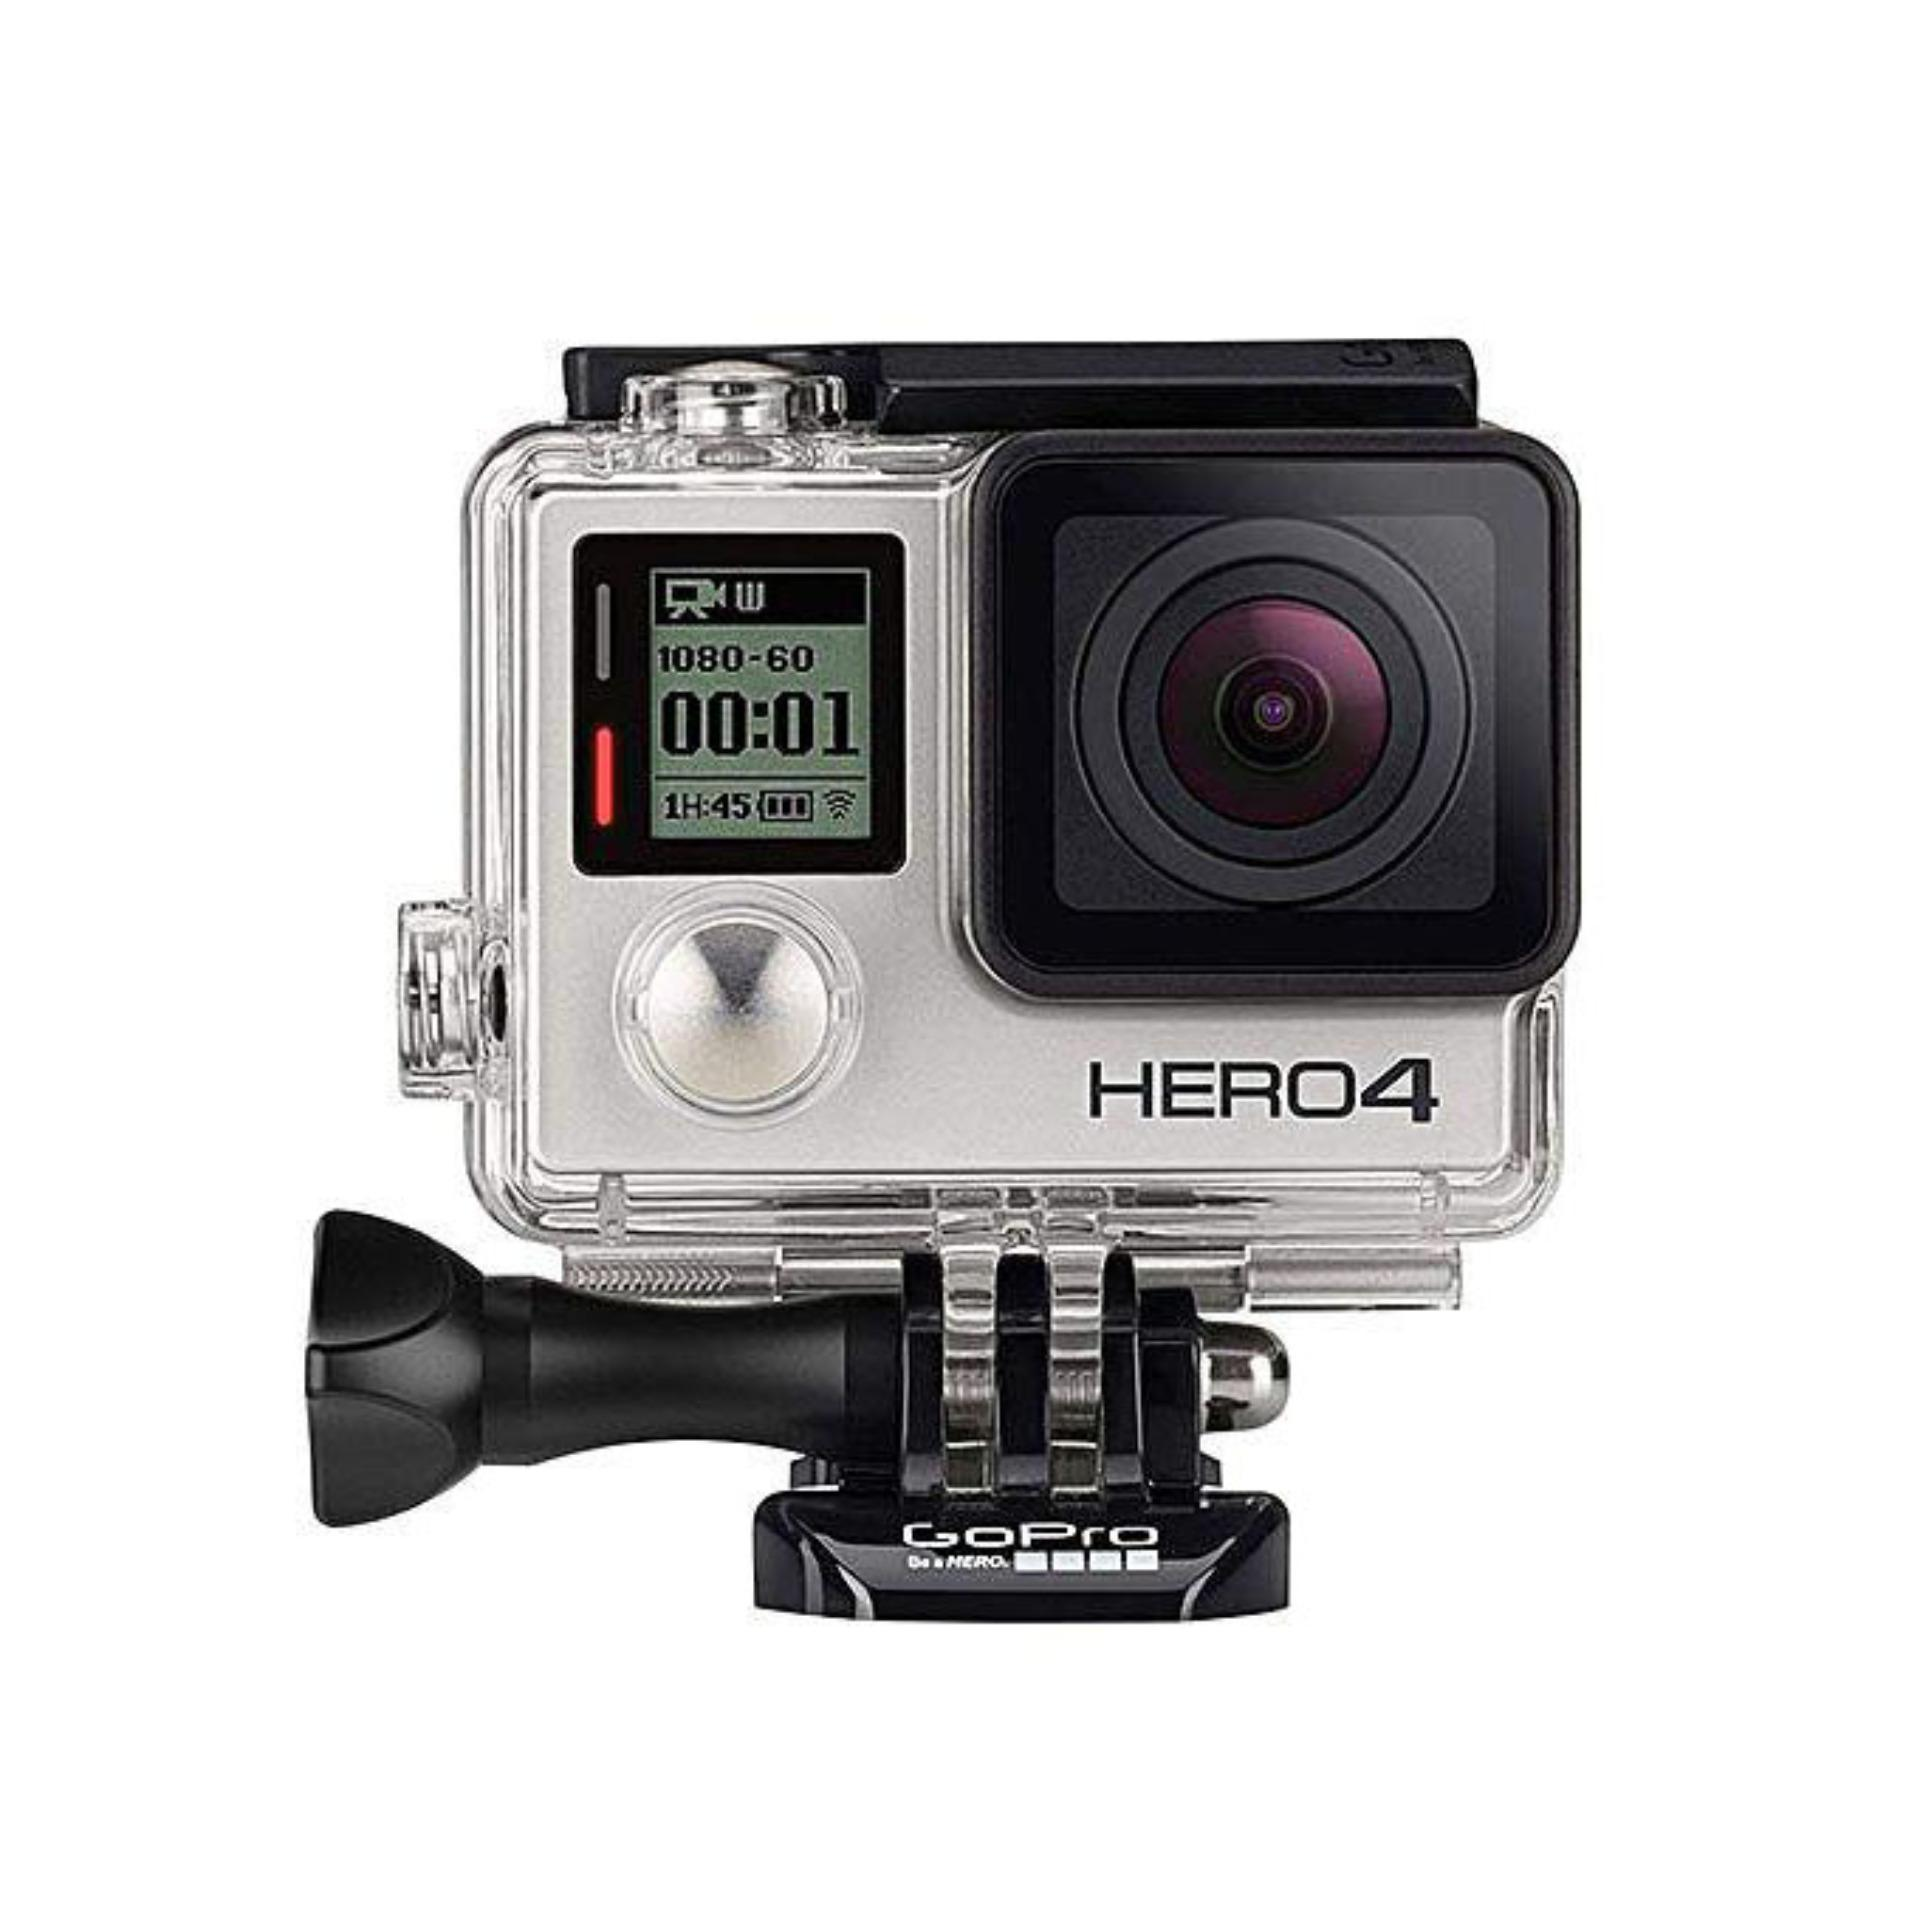 Sports Action Camera Buy At Best Price In X Pro 6s 4k 12 Mp Hero4 Silver